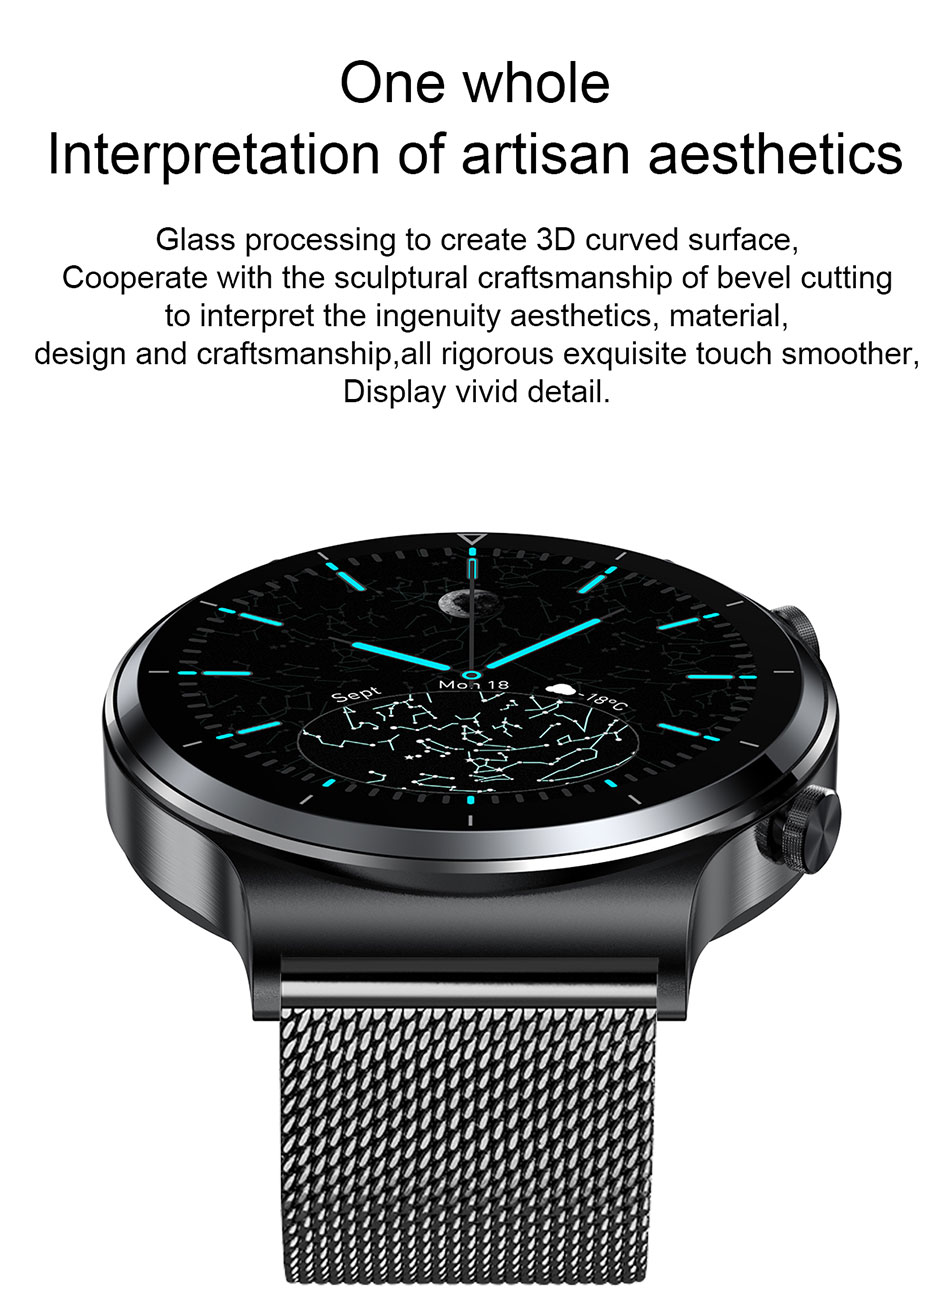 H96c41546f19044f69685ab1fb4984491V LIGE 2021 New Smart watch Men IP68 waterproof watch Multiple sports modes heart rate weather Forecast Bluetooth Men Smart watch